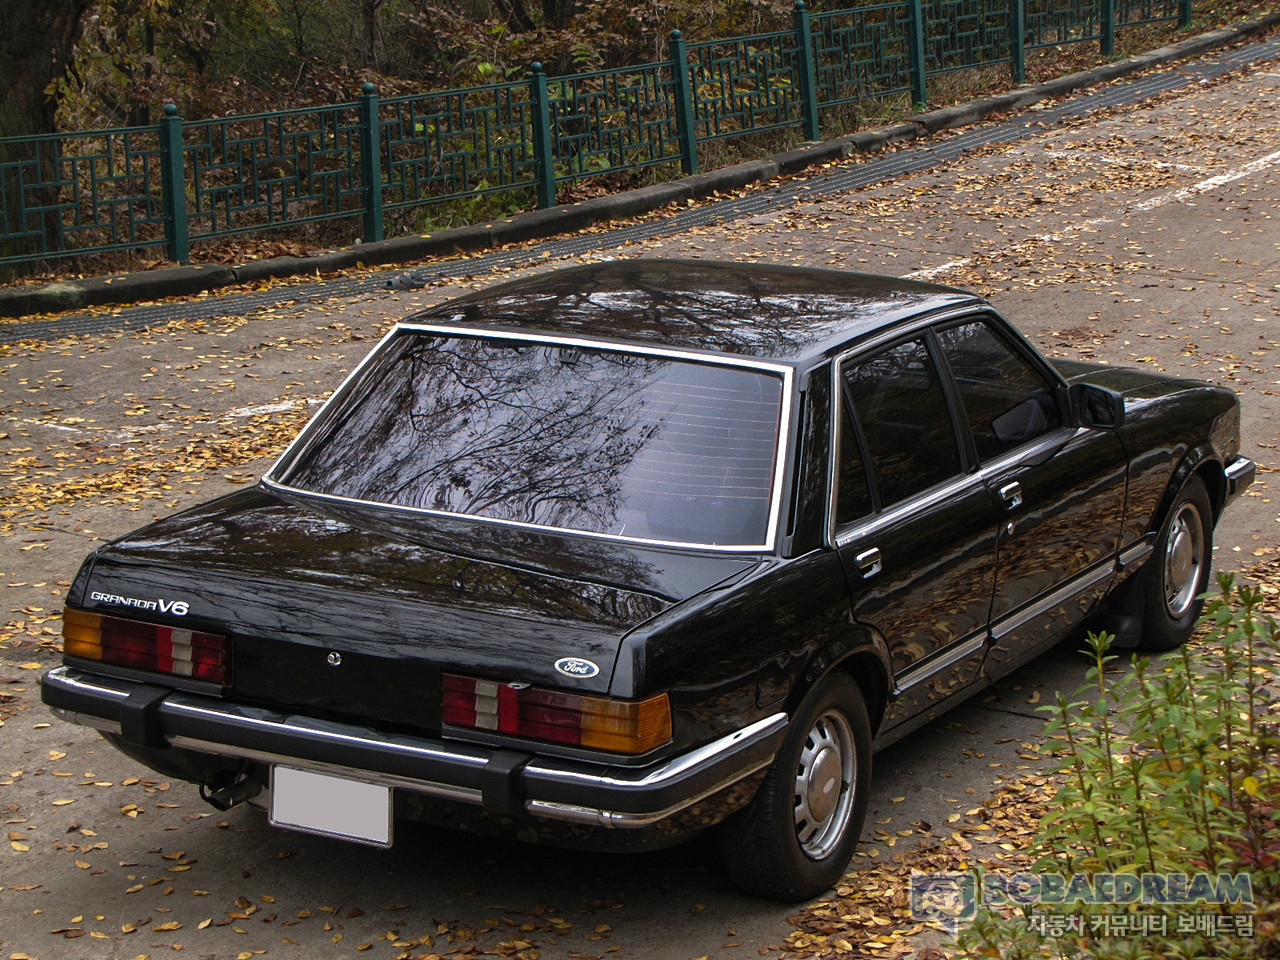 Hyundai granada photo - 7